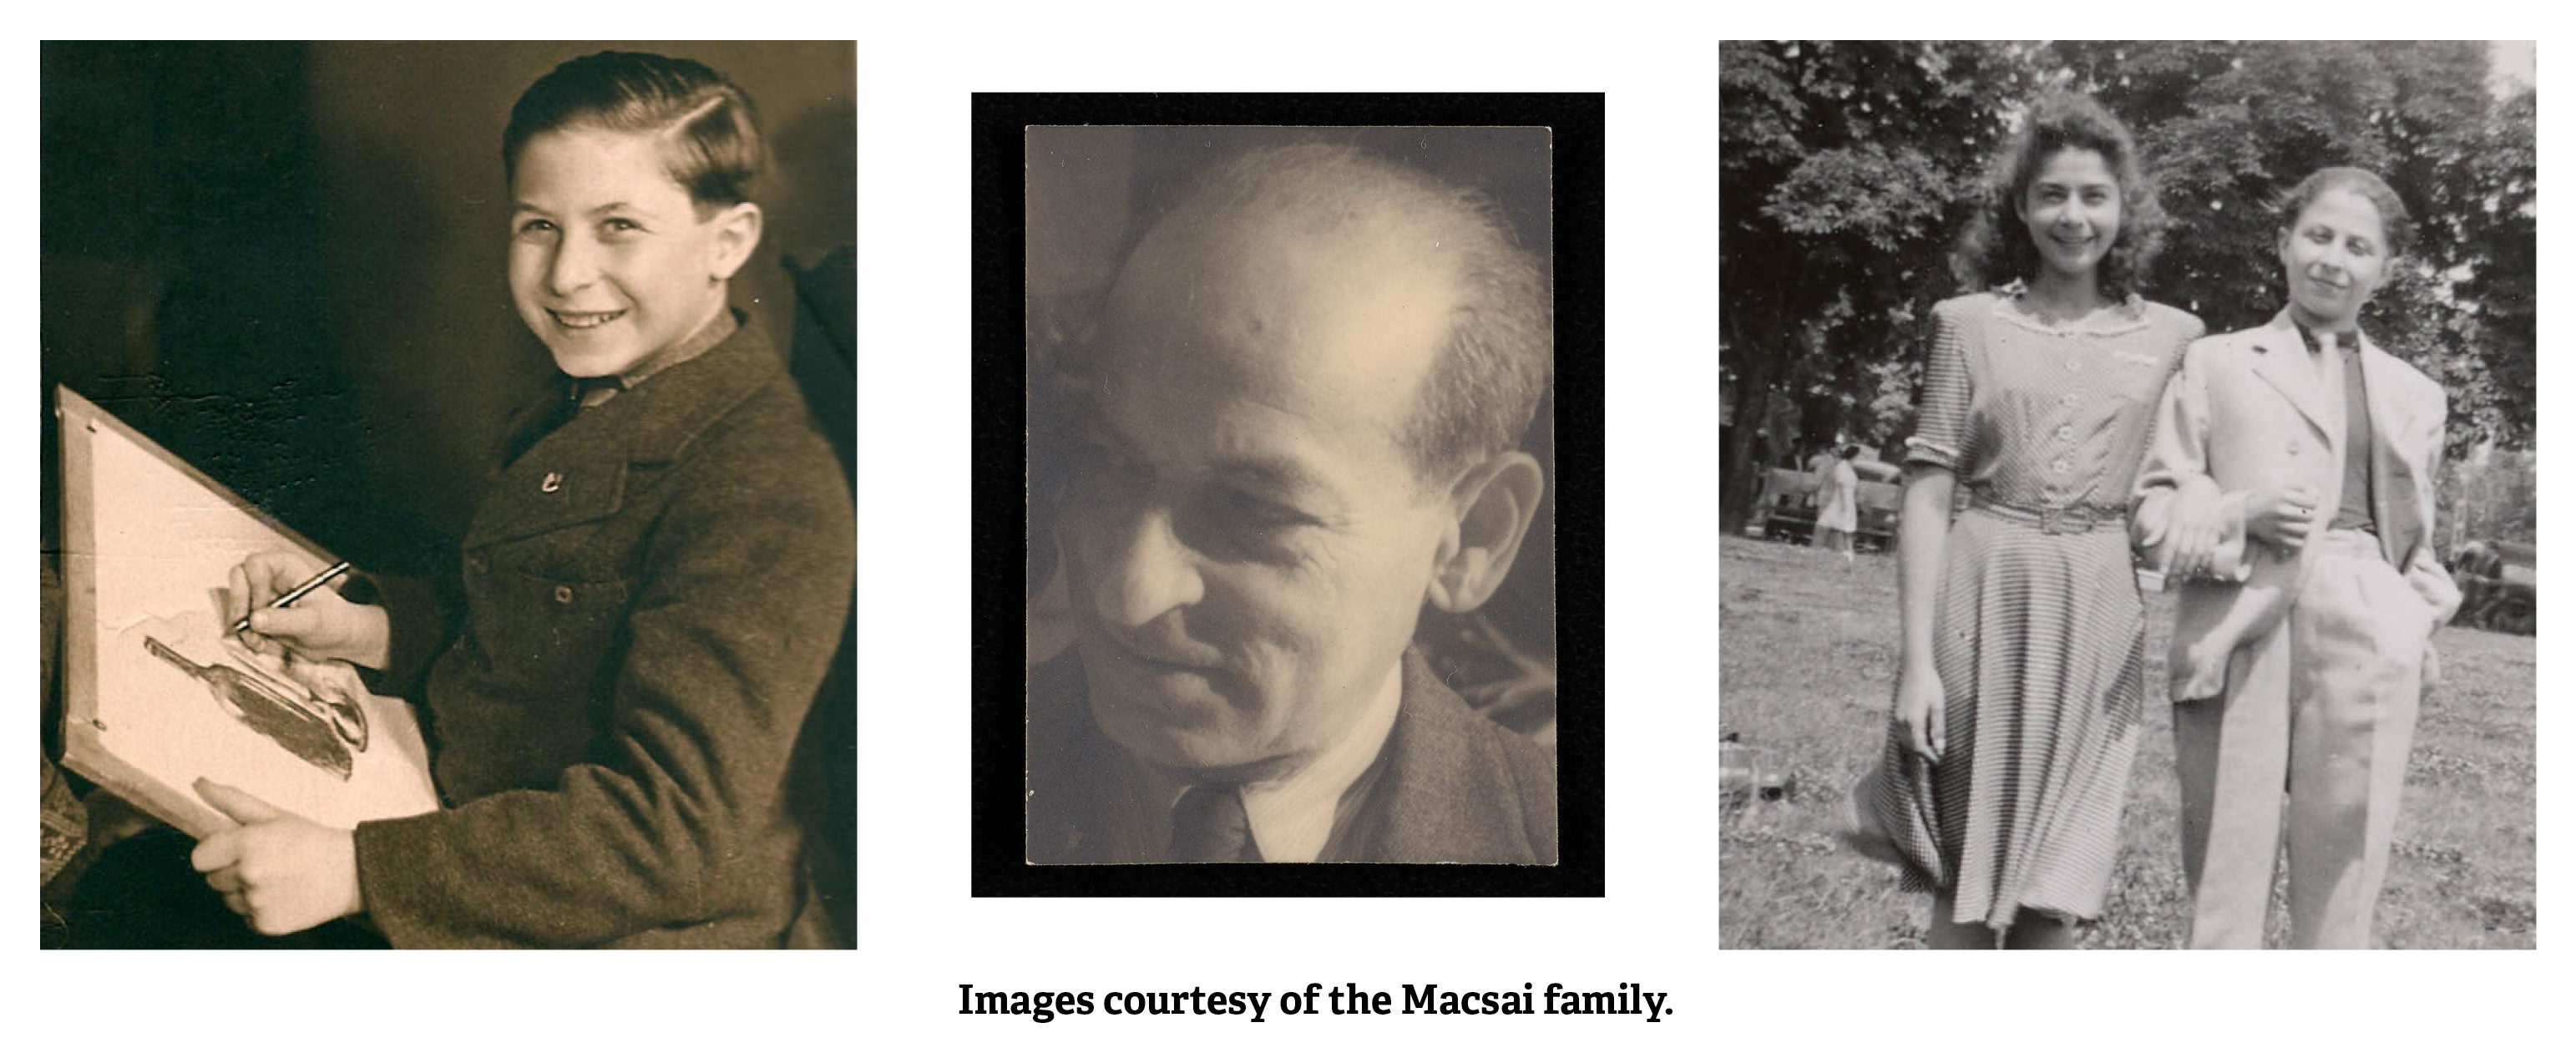 Three images, Portrait of young János Lusztig, Portrait of István Irsai, and Snapshot of János Lusztig and his cousin in Budapest with text reading, 'Images courtesy of the Macsai family.'